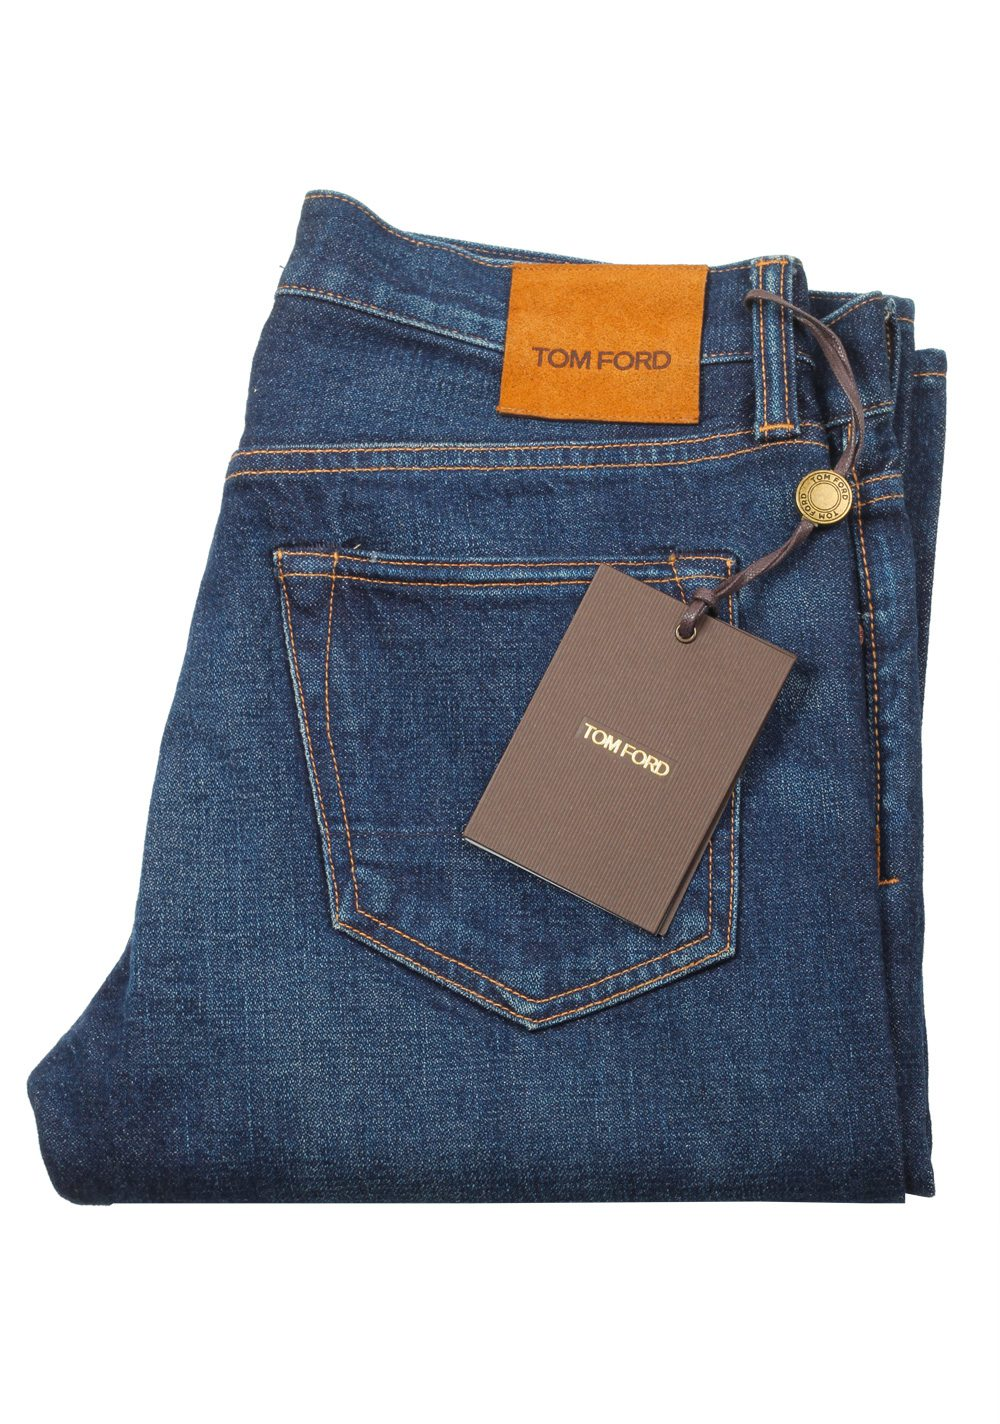 TOM FORD Blue Straight Jeans TFD002 Size 46 / 30 U.S. | Costume Limité